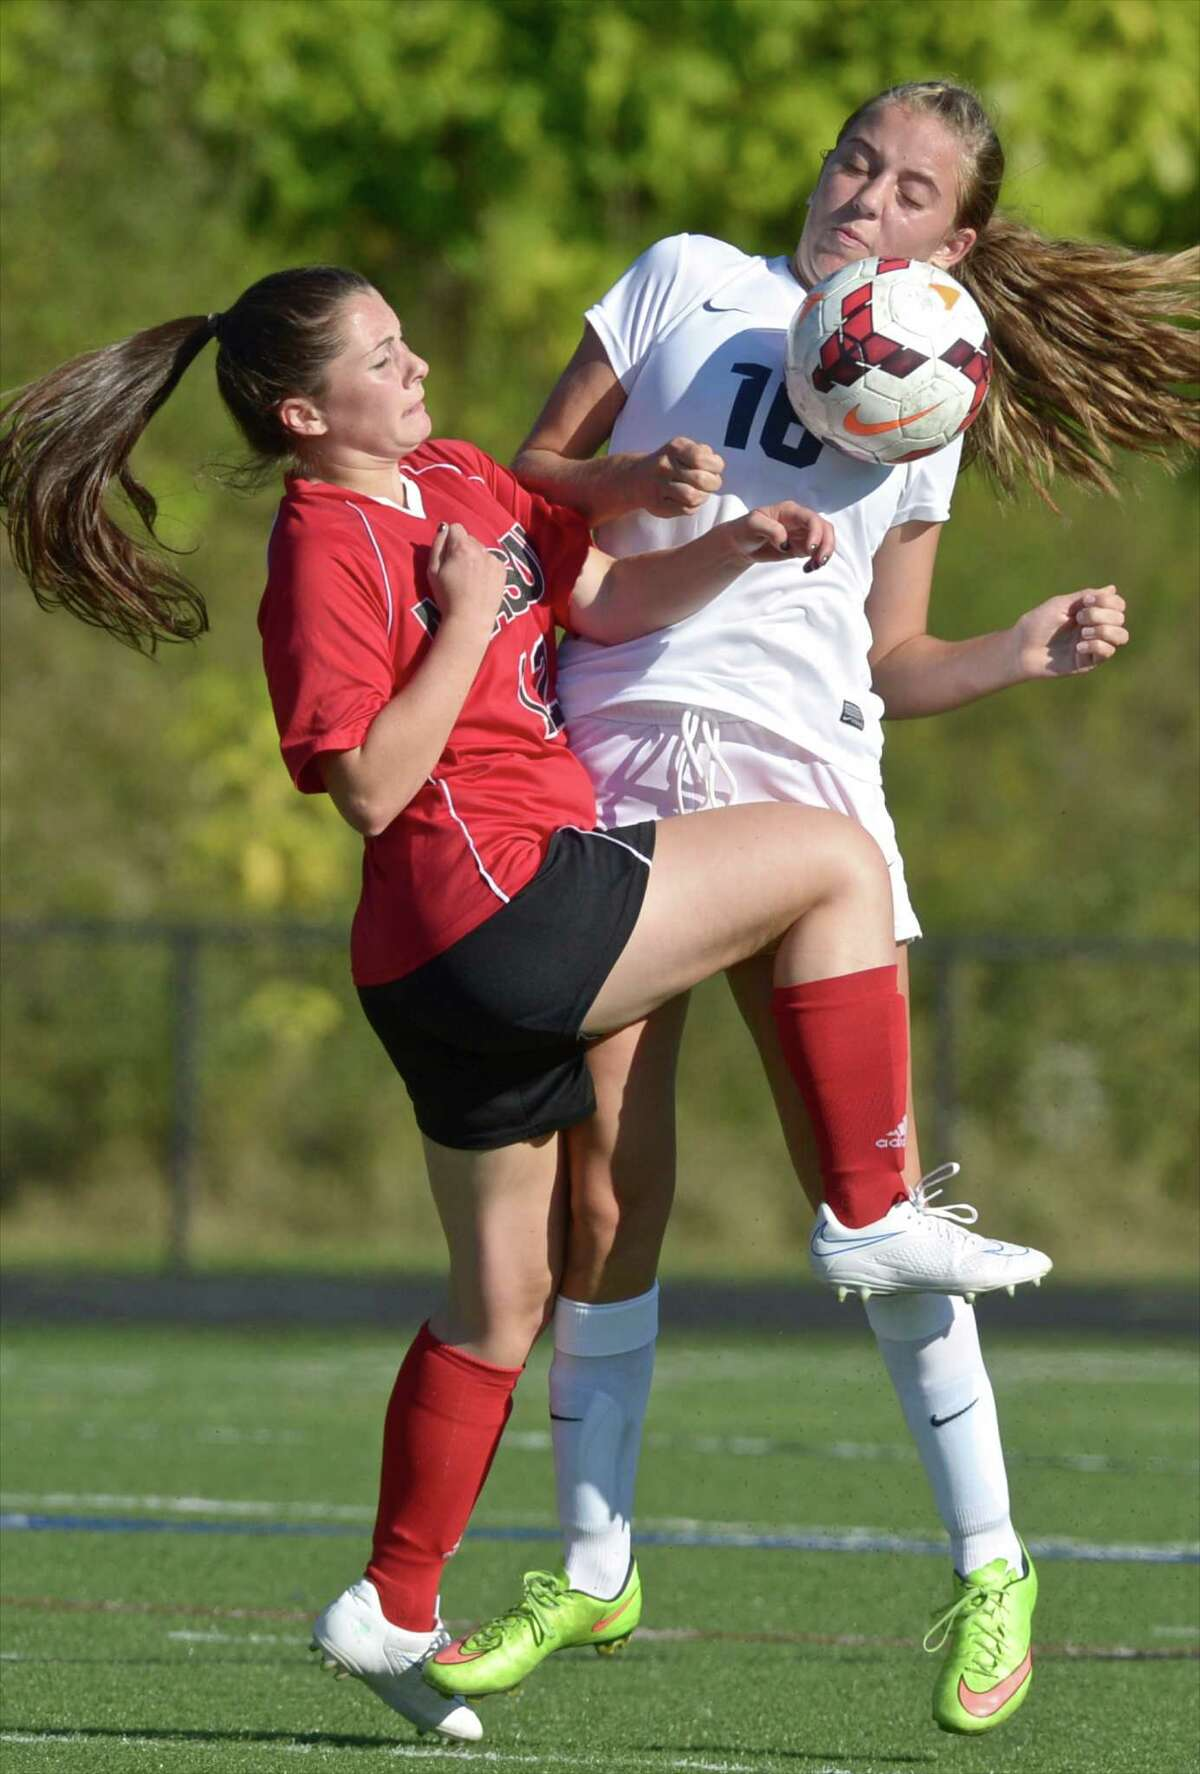 Masuk's Brooke Metcaldi (12) and Immaculate's Kinsey Jarbo battle for the bal during their game Thursday at Immaculate High School.